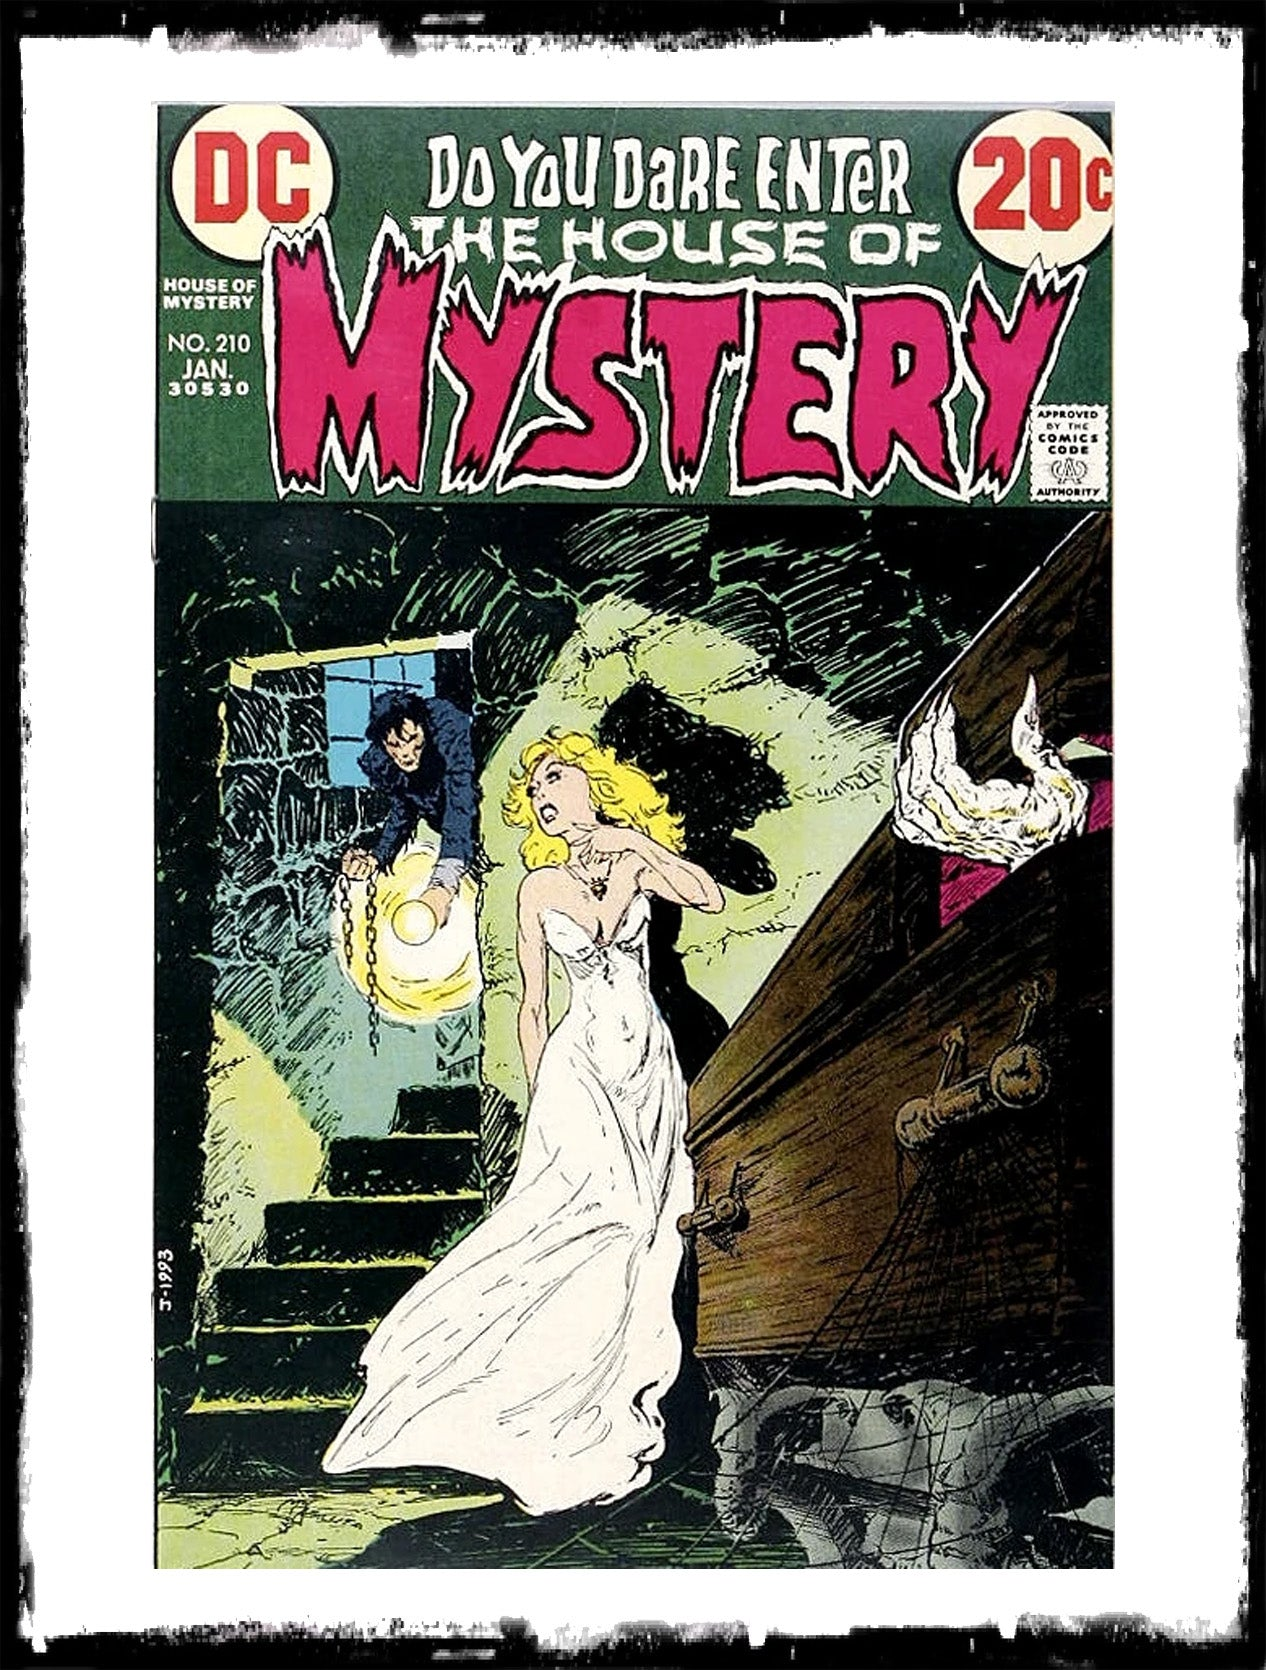 HOUSE OF MYSTERY - #210 CLASSIC DC HORROR! (1973 - VF-)